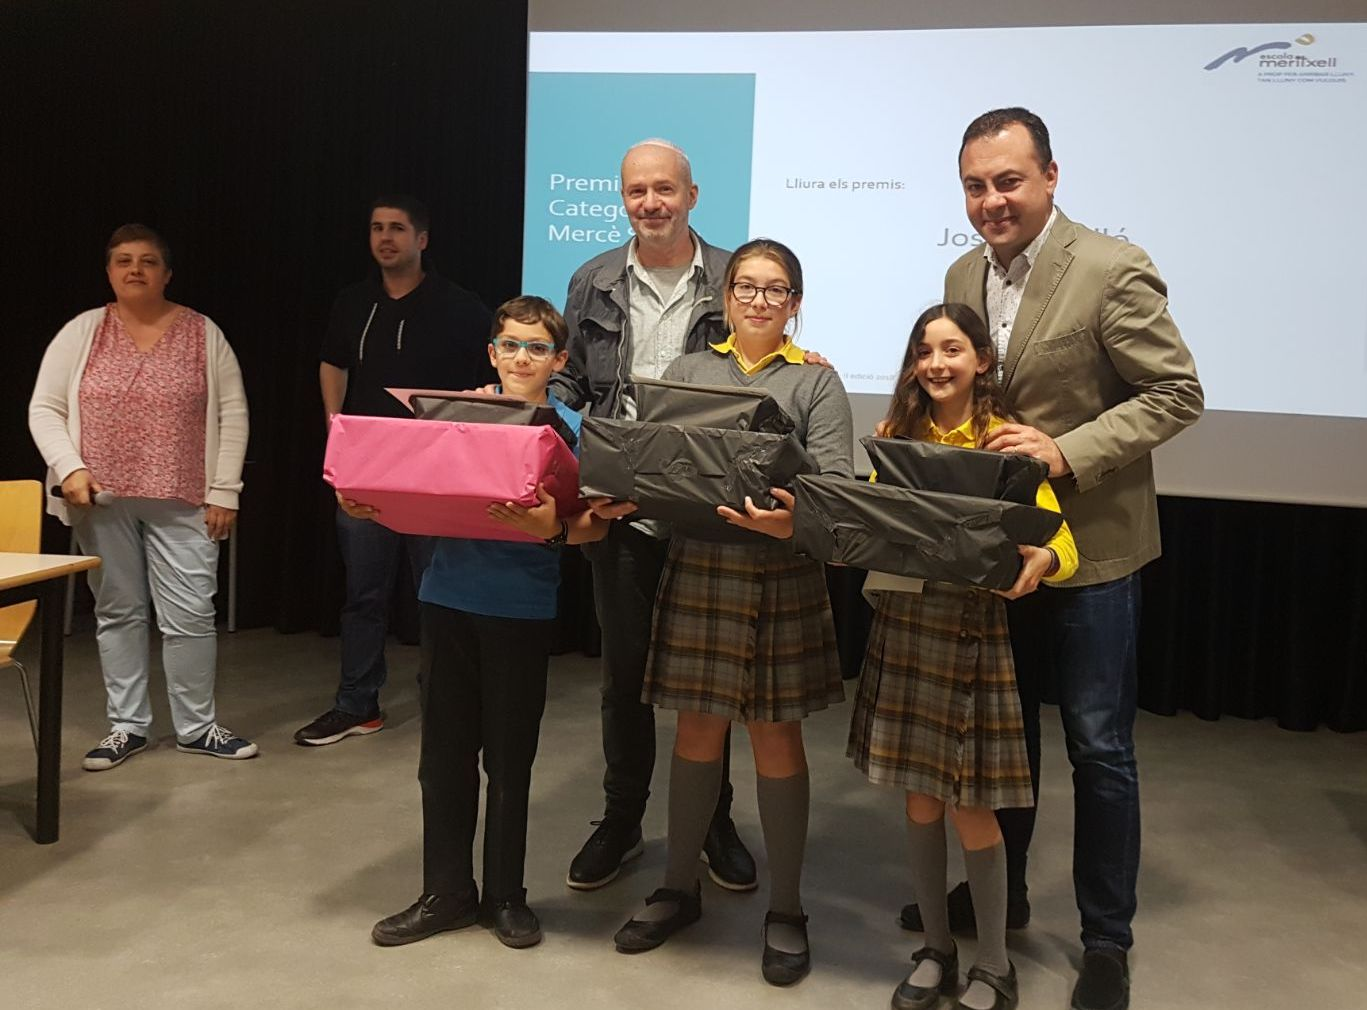 Premis ExACCT 2018 de l'Escola Meritxell de Mataró